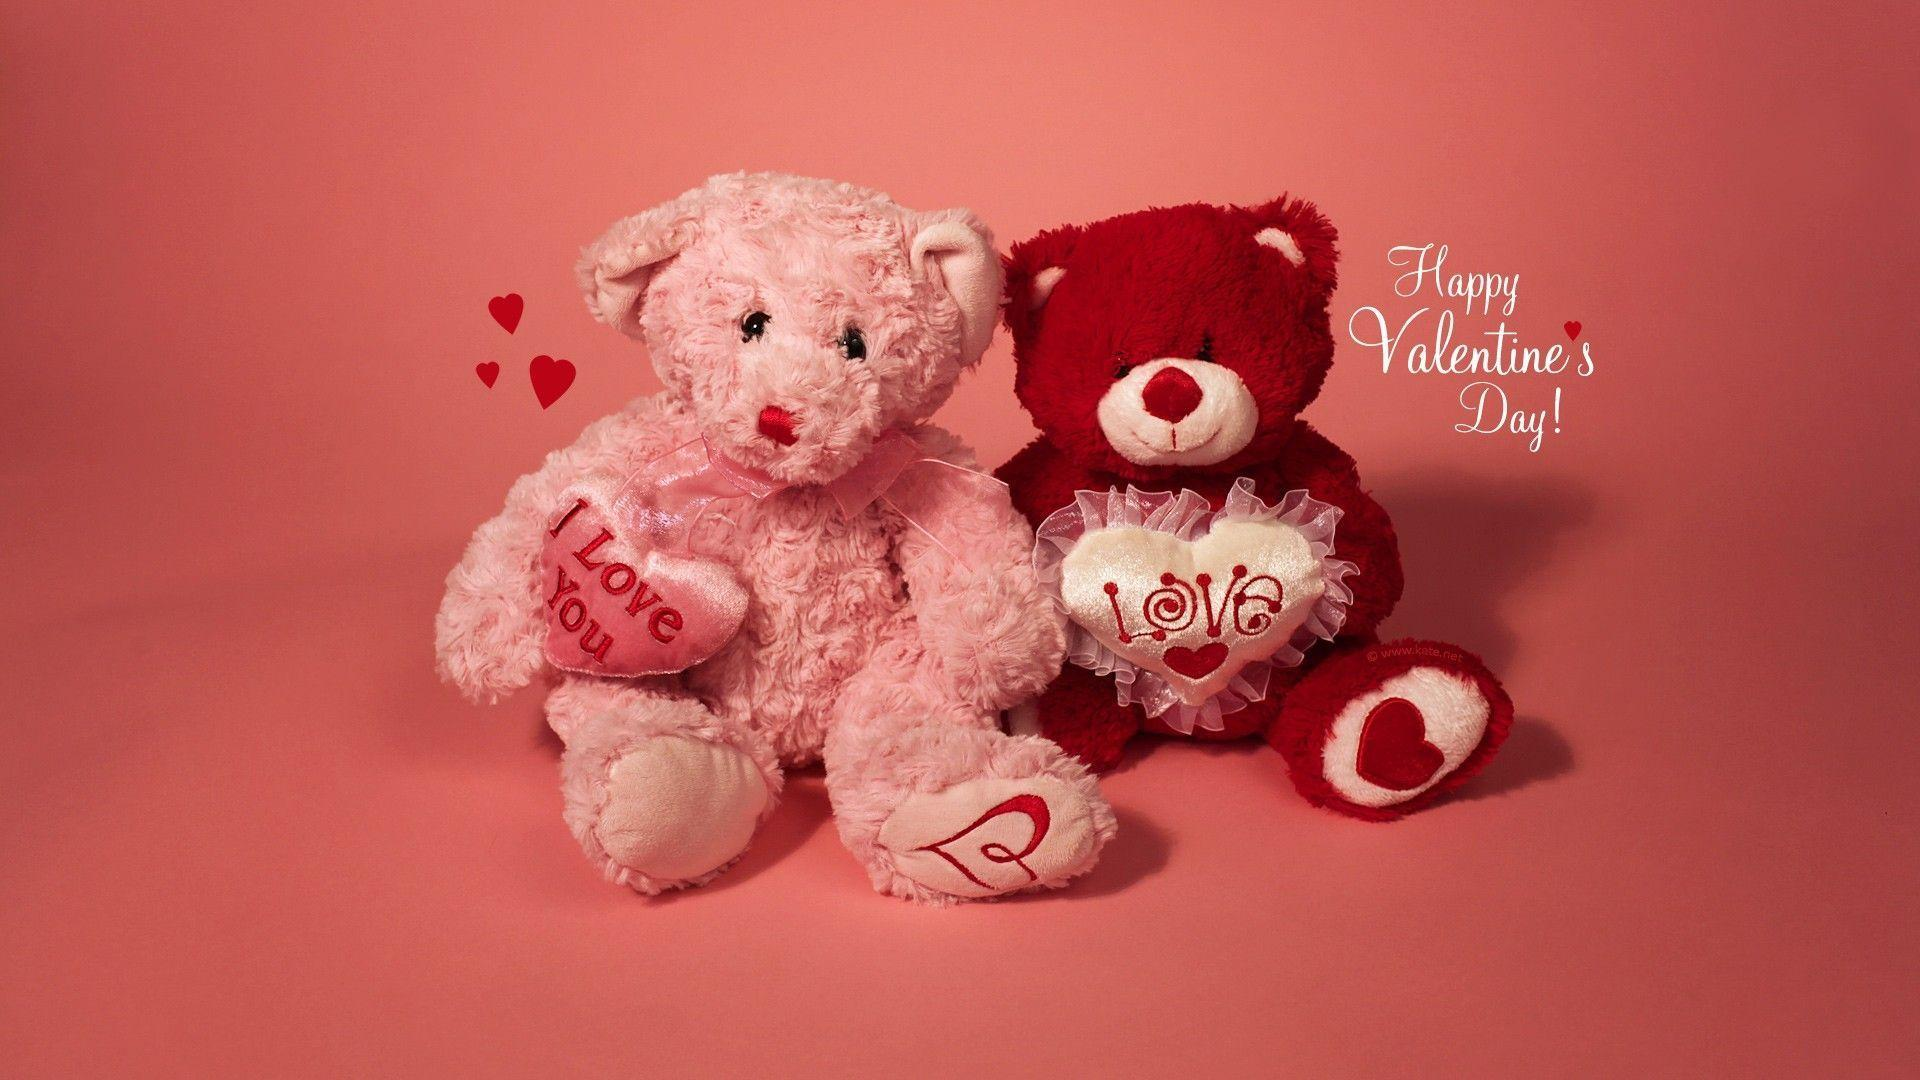 Cute Valentines Day Wallpapers   Top Cute Valentines Day